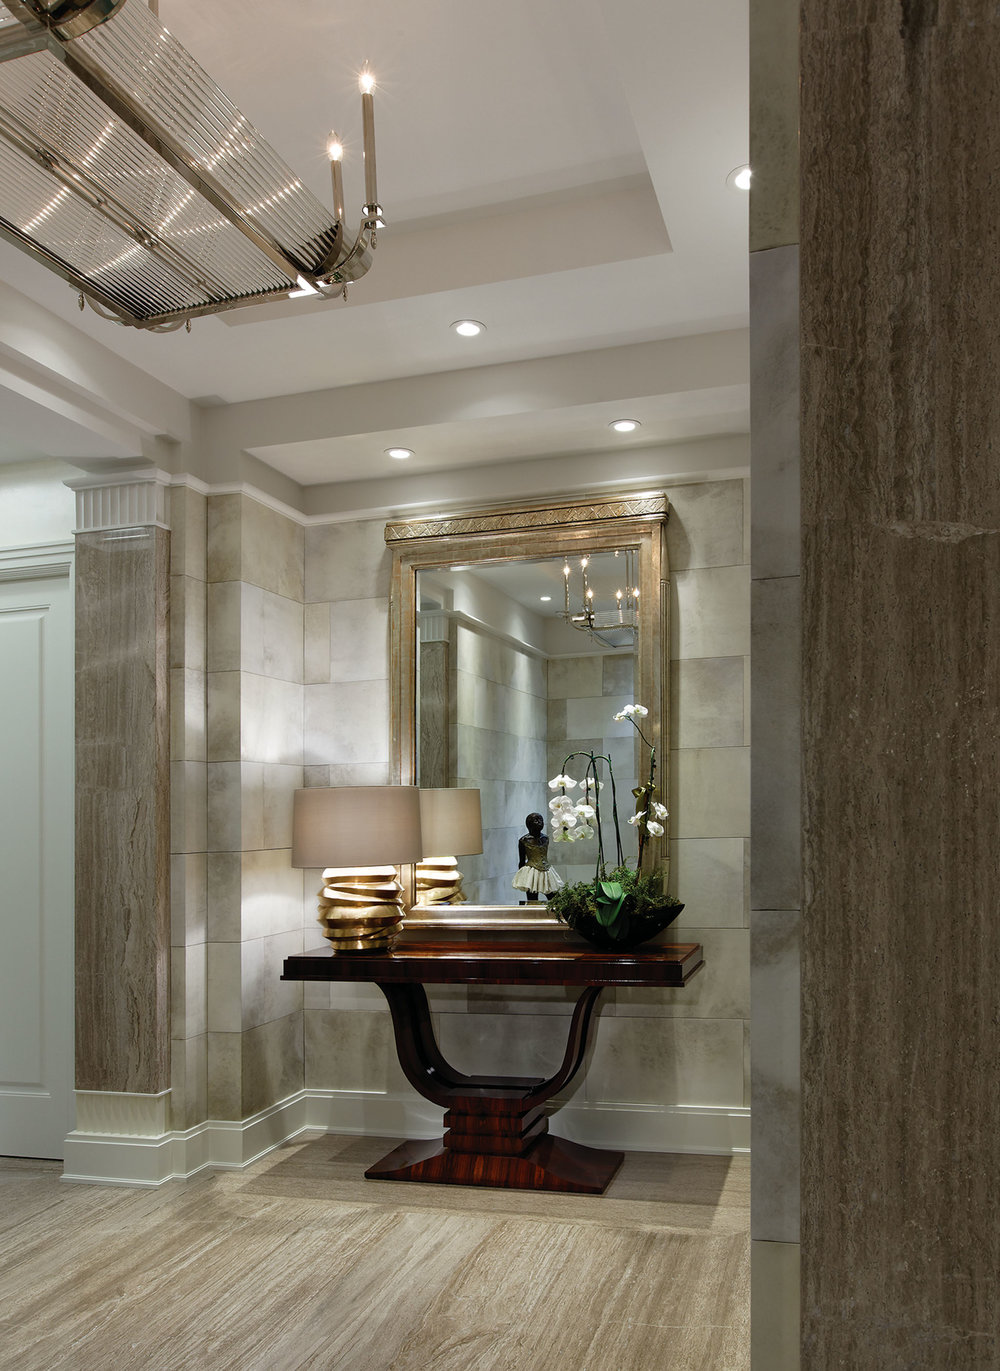 Goatskin covers the wall tiles of the apartment's foyer. Lush wallcoverings like these became popular in France in the 1920s, 30s, and 40s.